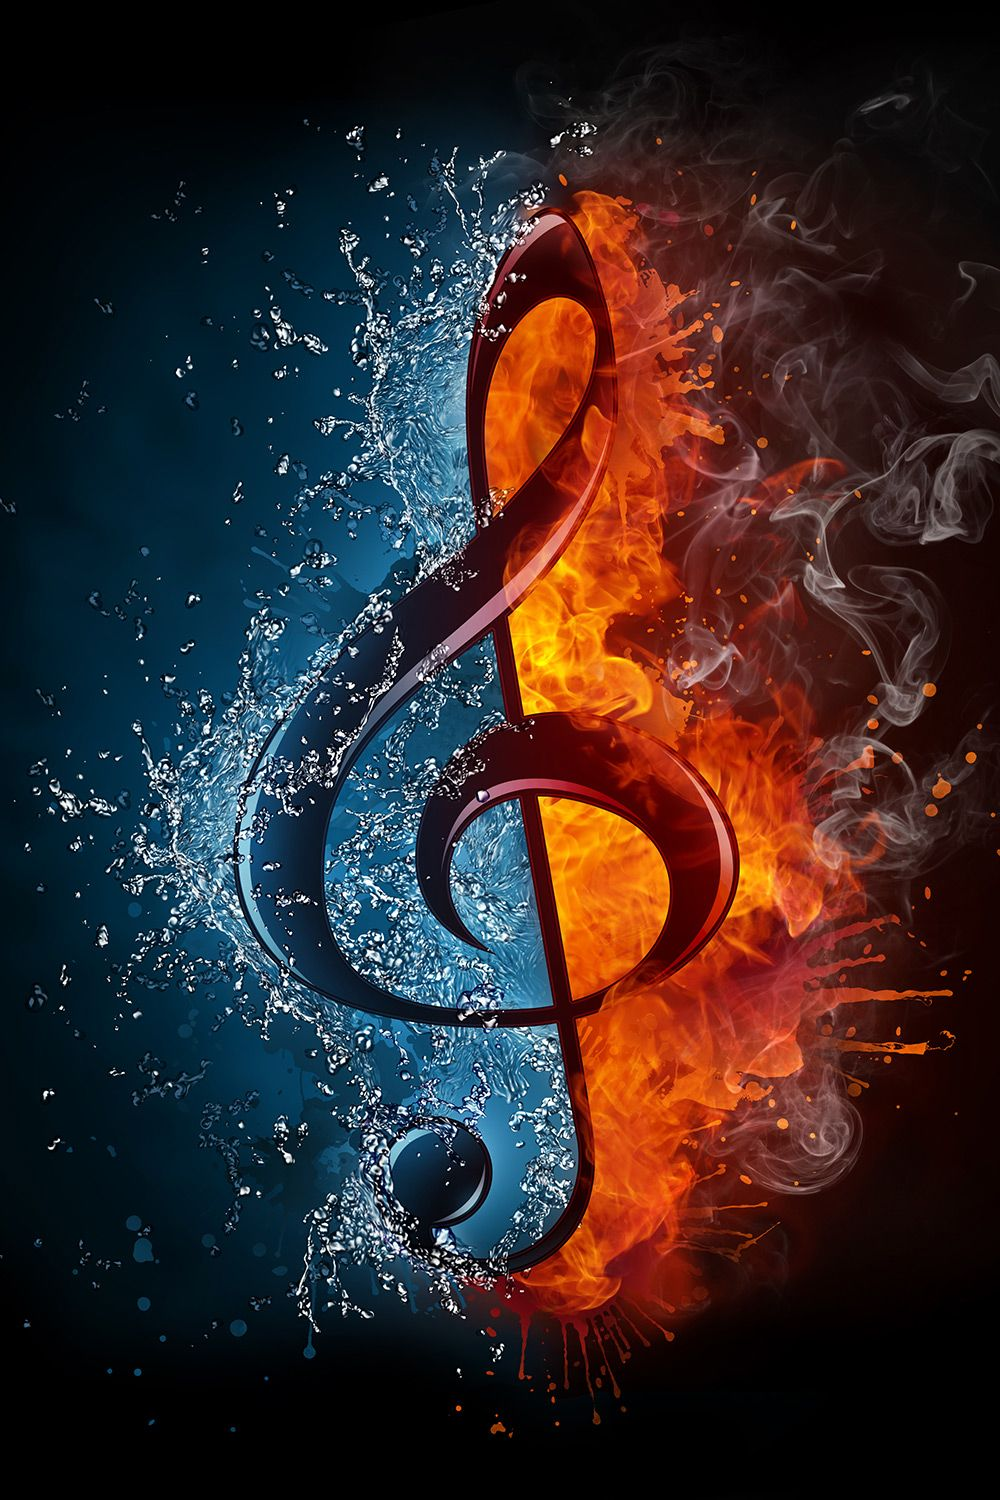 Choose Fire Ice Music Symbol Wallpaper To Create Fantastic Wall Decor In Your Room Or Browse Hundreds Of Other Wallpapers Music Wallpaper Music Art Musical Art